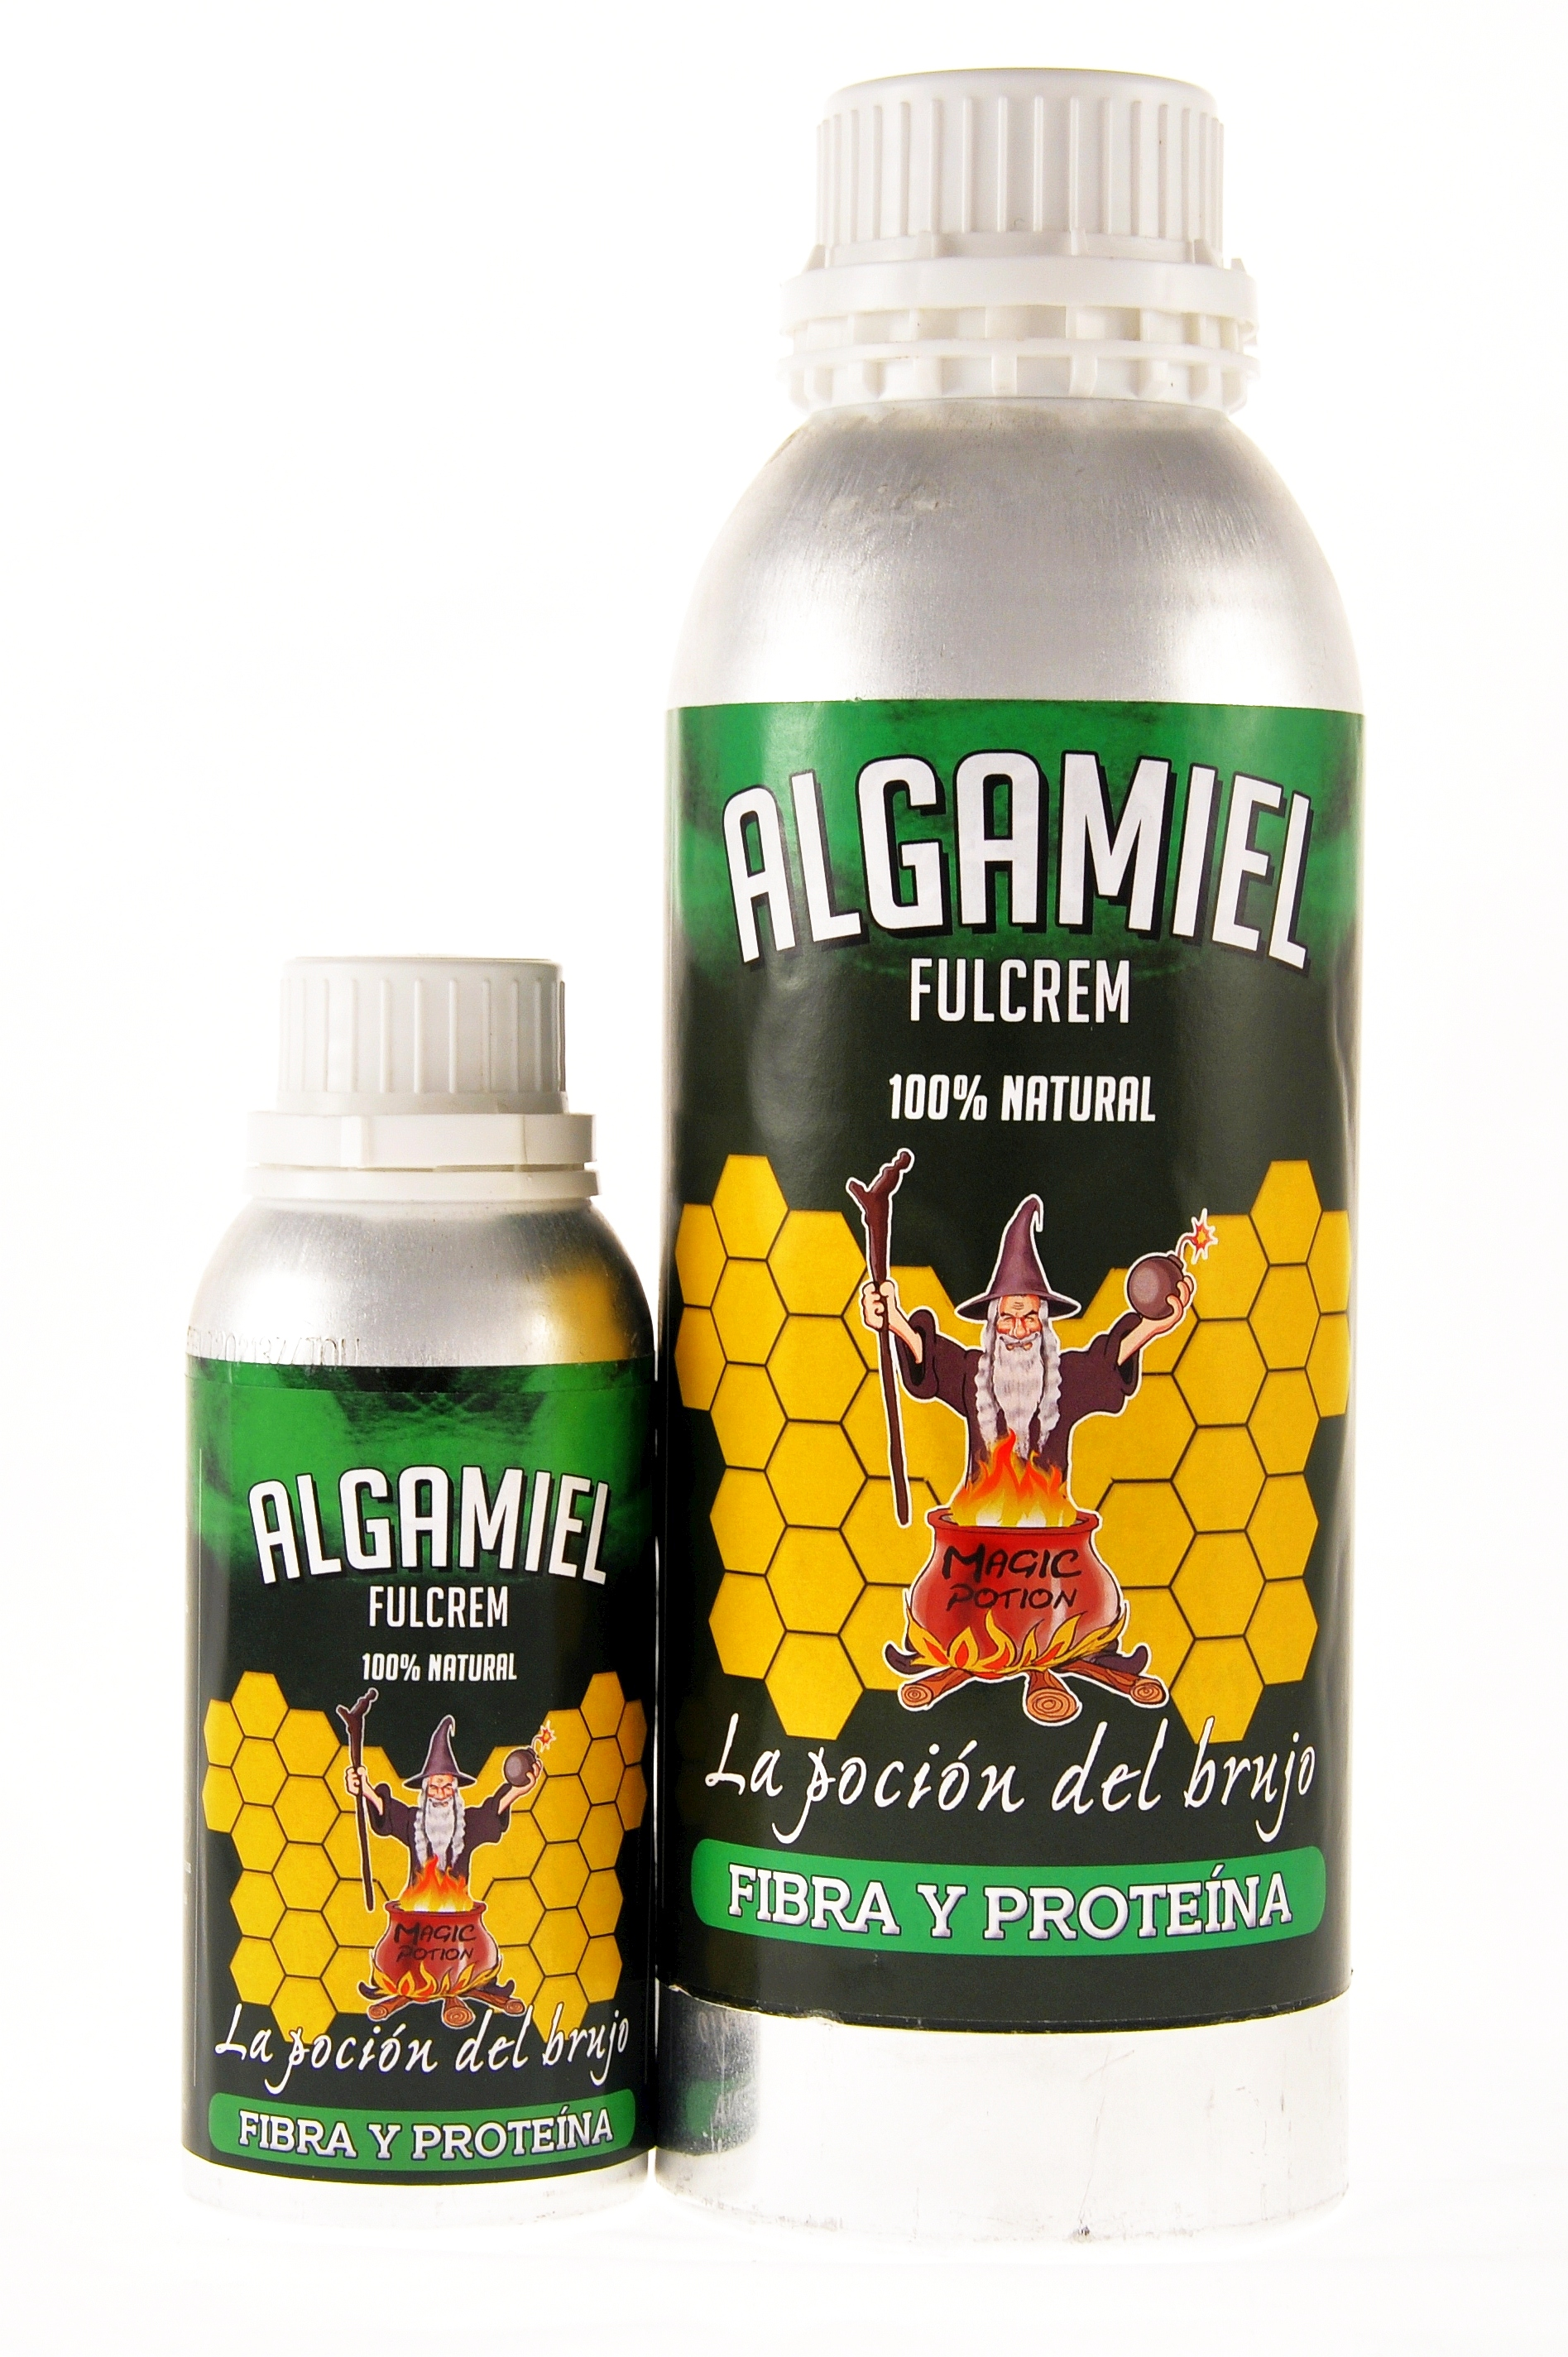 CANNABOOM - Algamiel Fullcrem 320ml